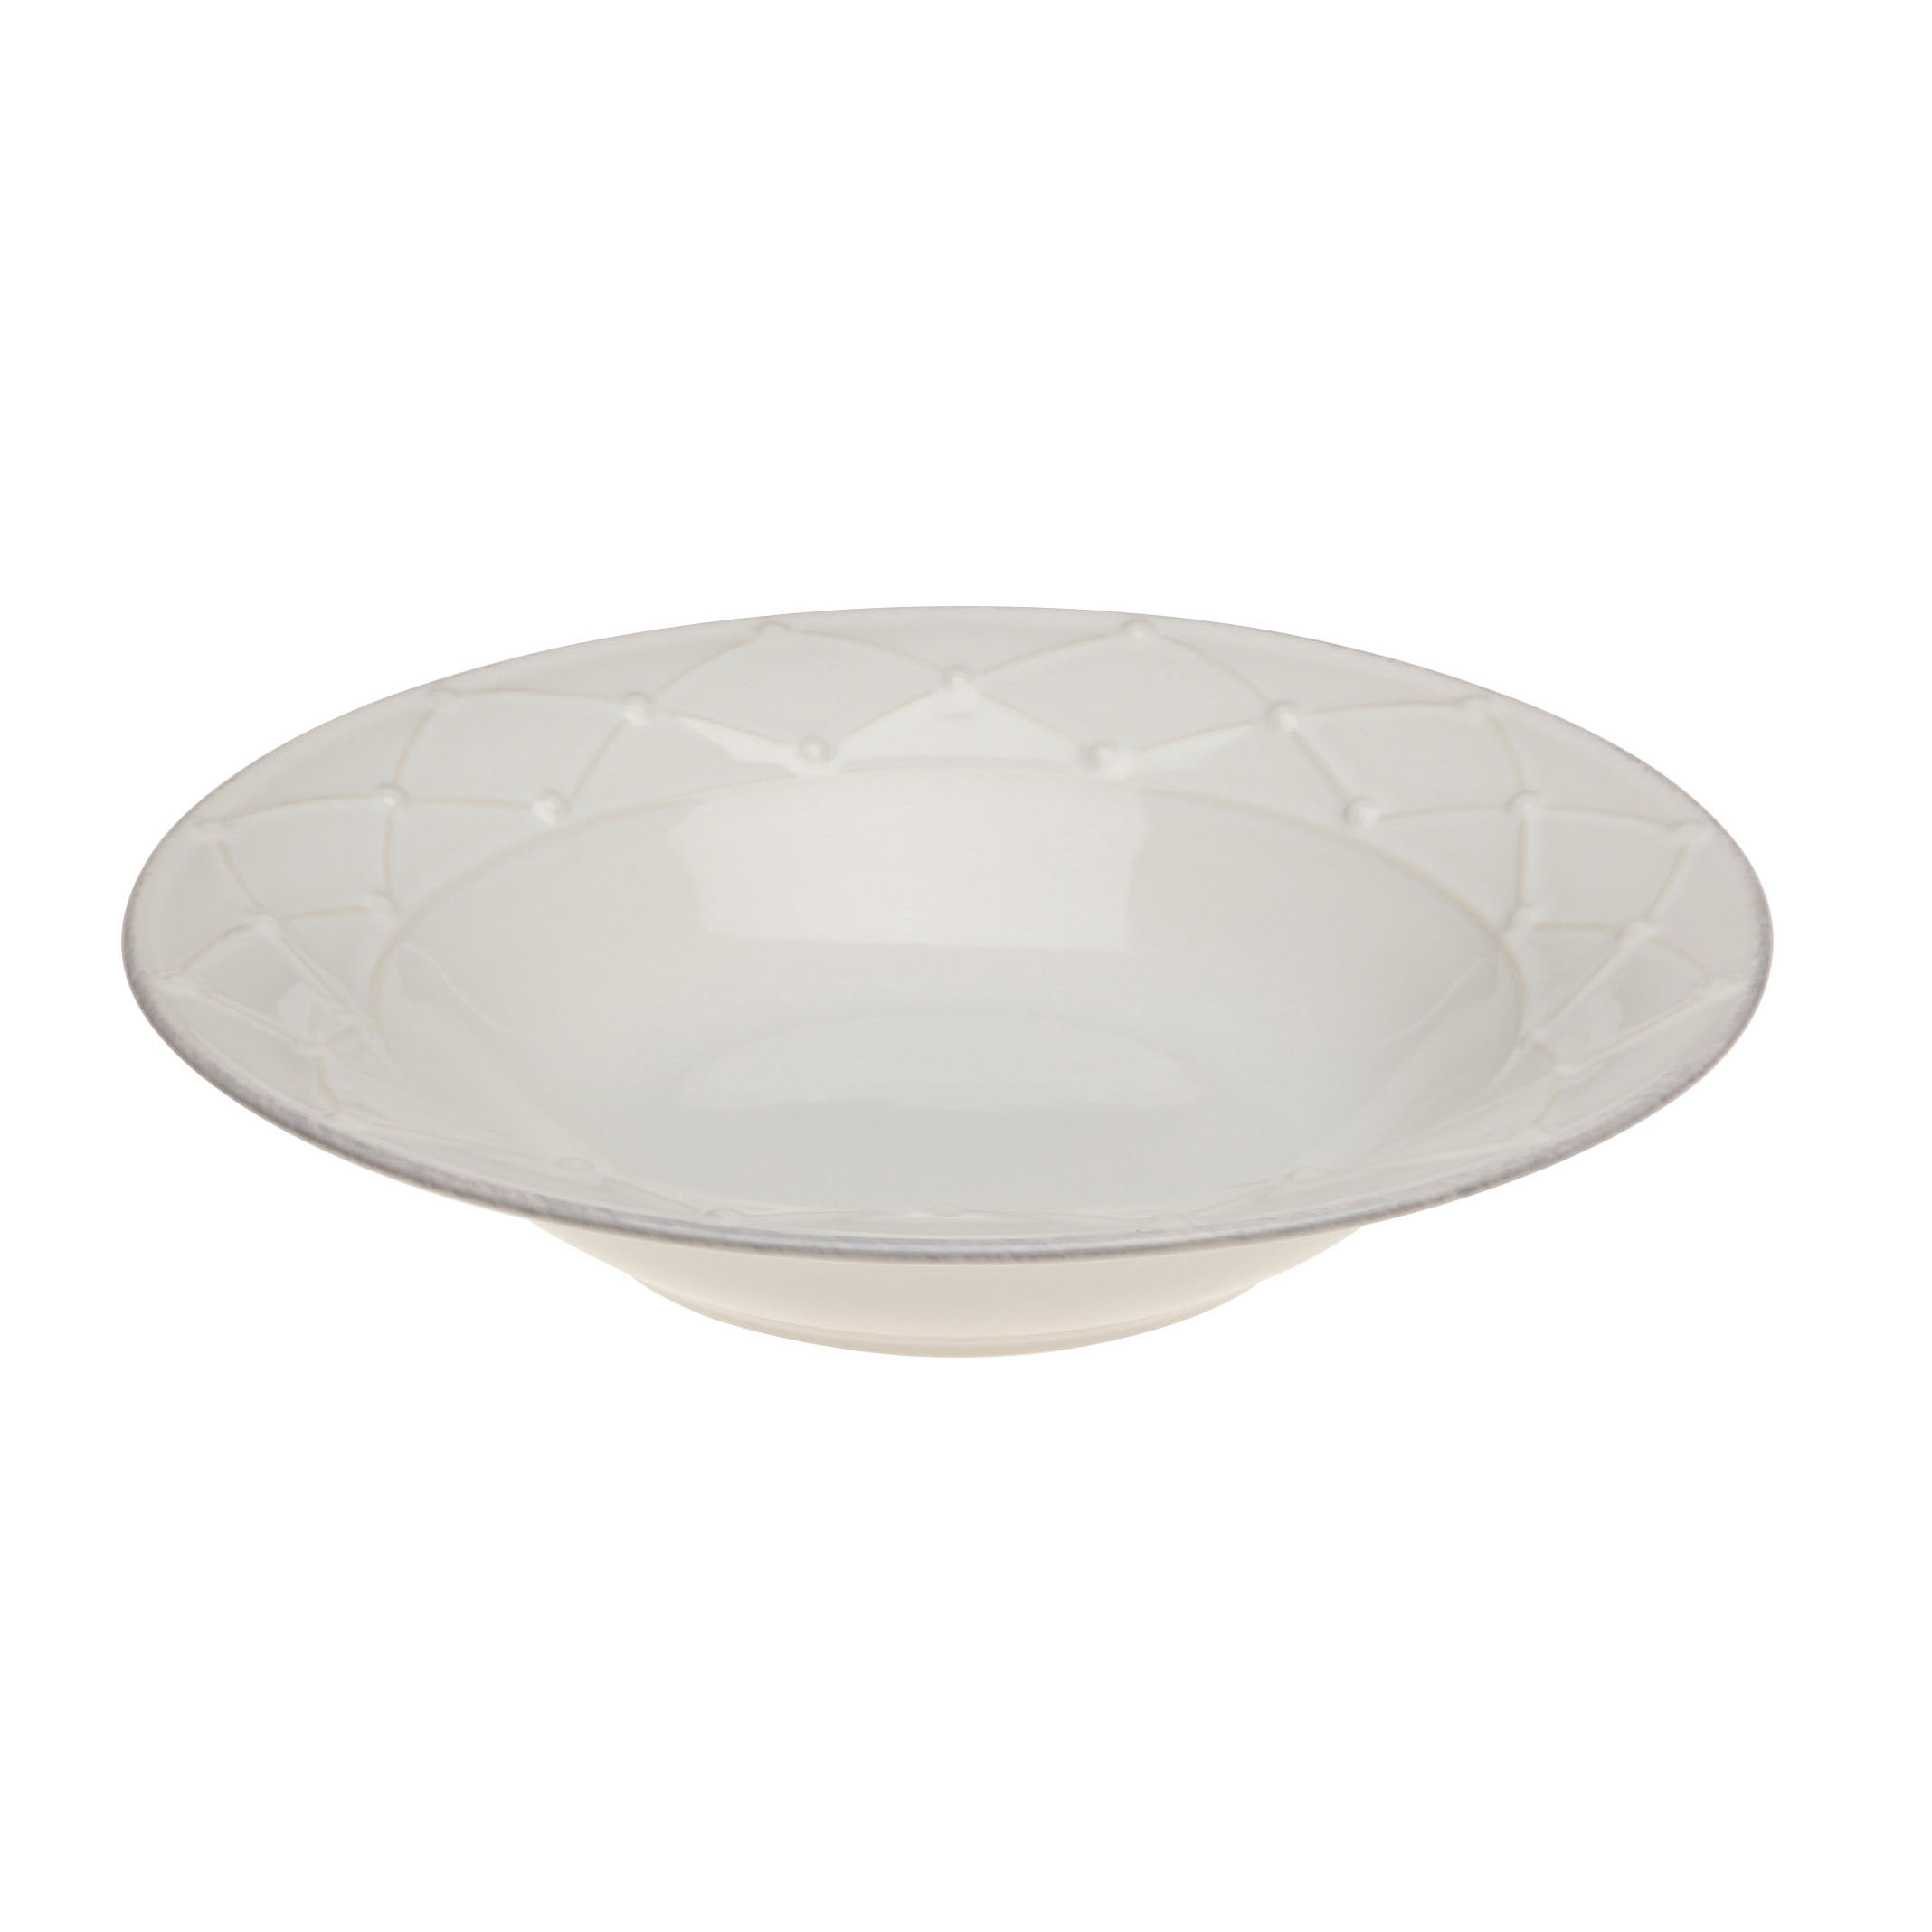 Meridian Soup/pasta Plate White 23.1cm Sparkle Gift